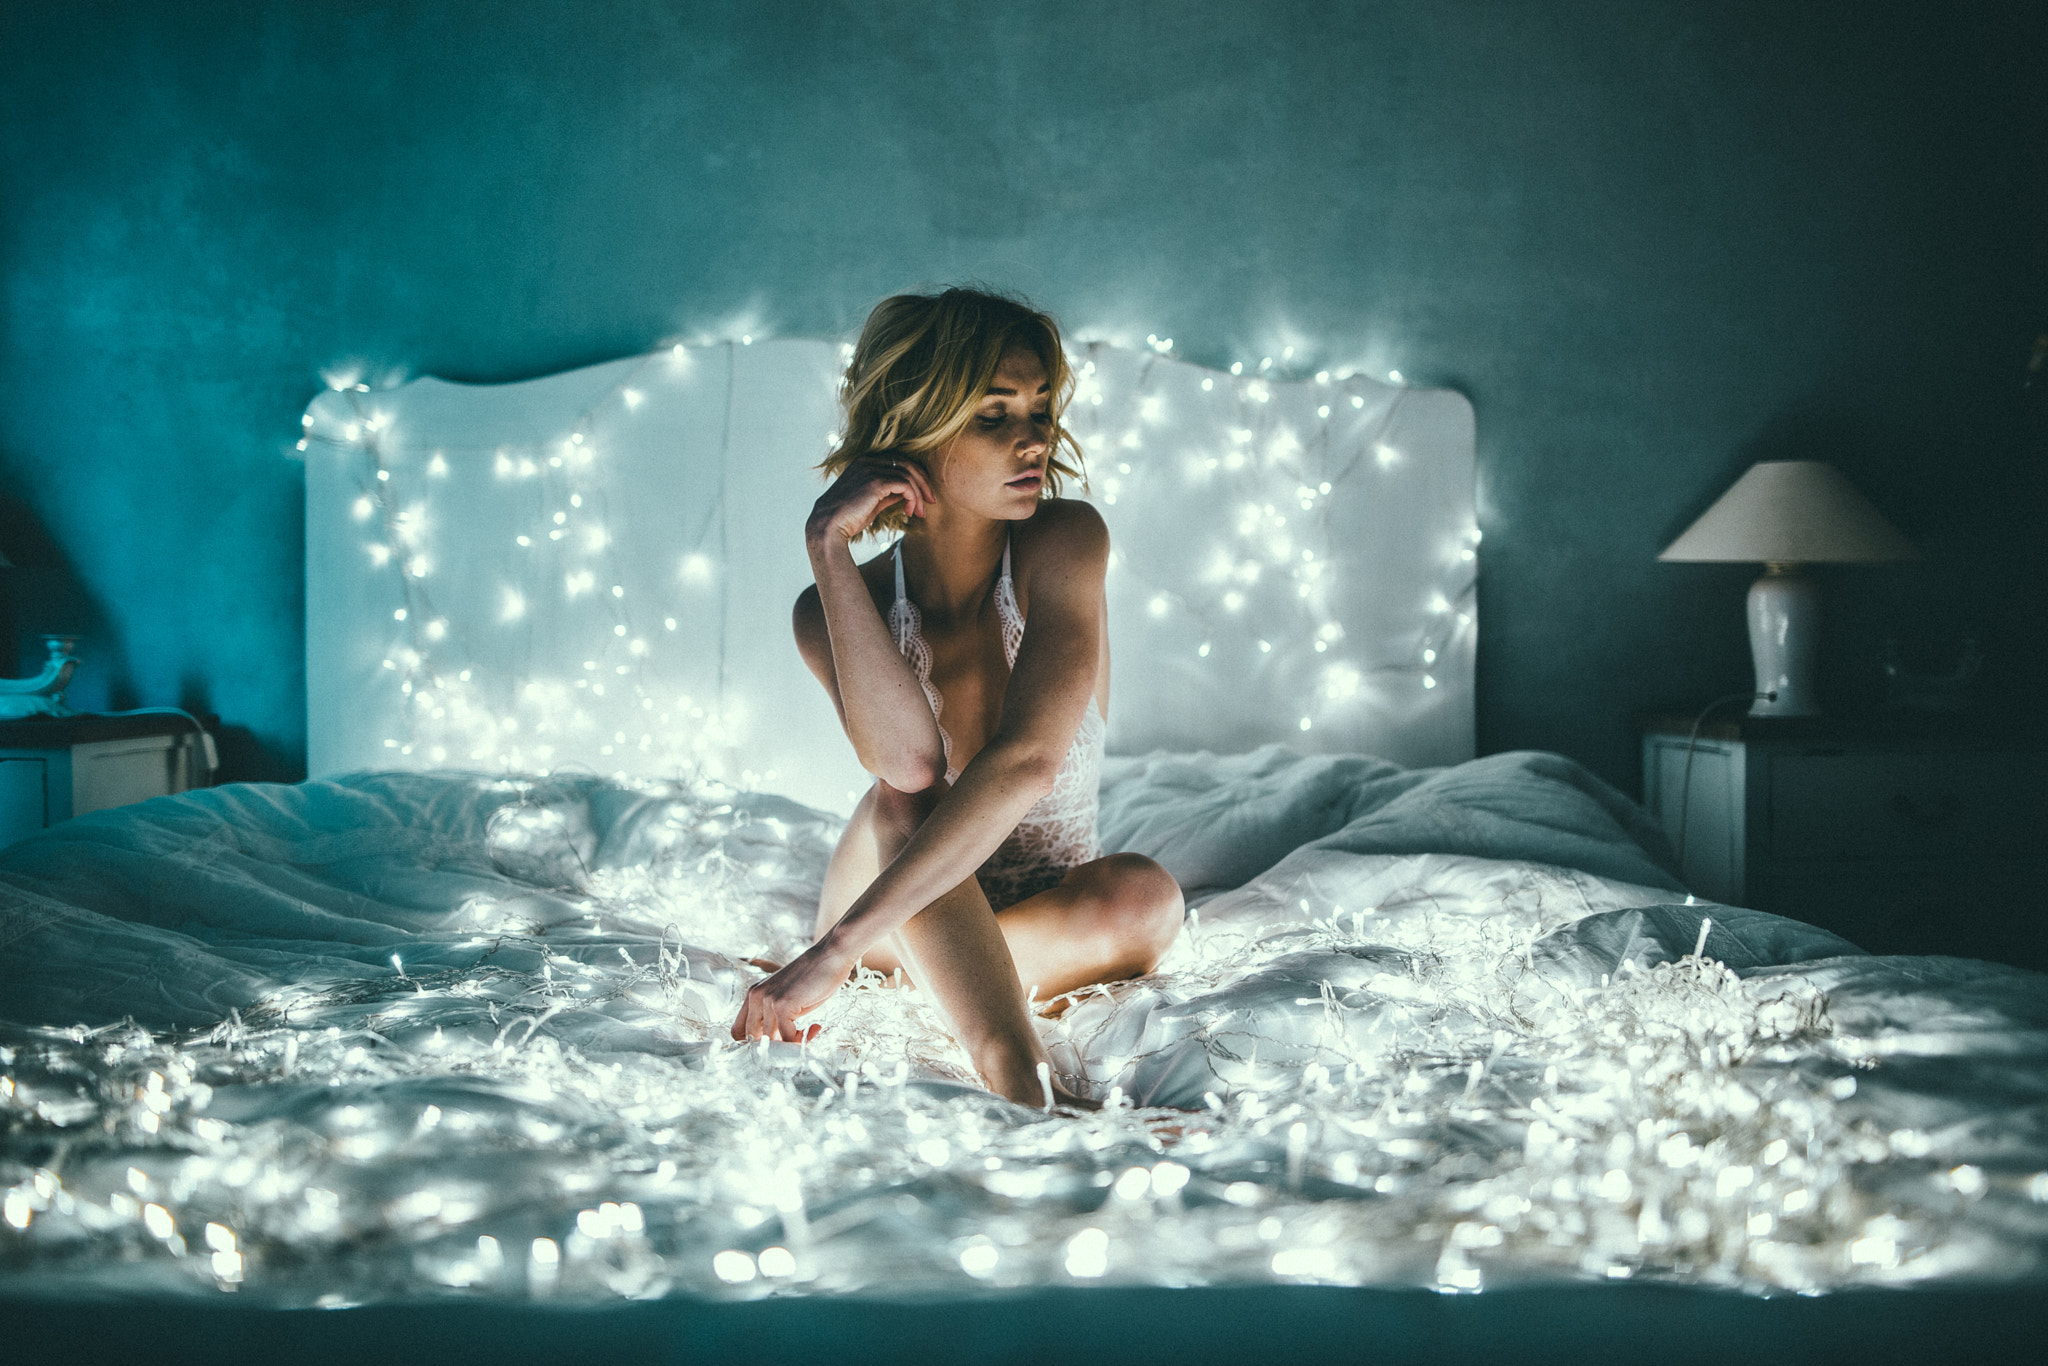 beautiful girl on bed with led lights